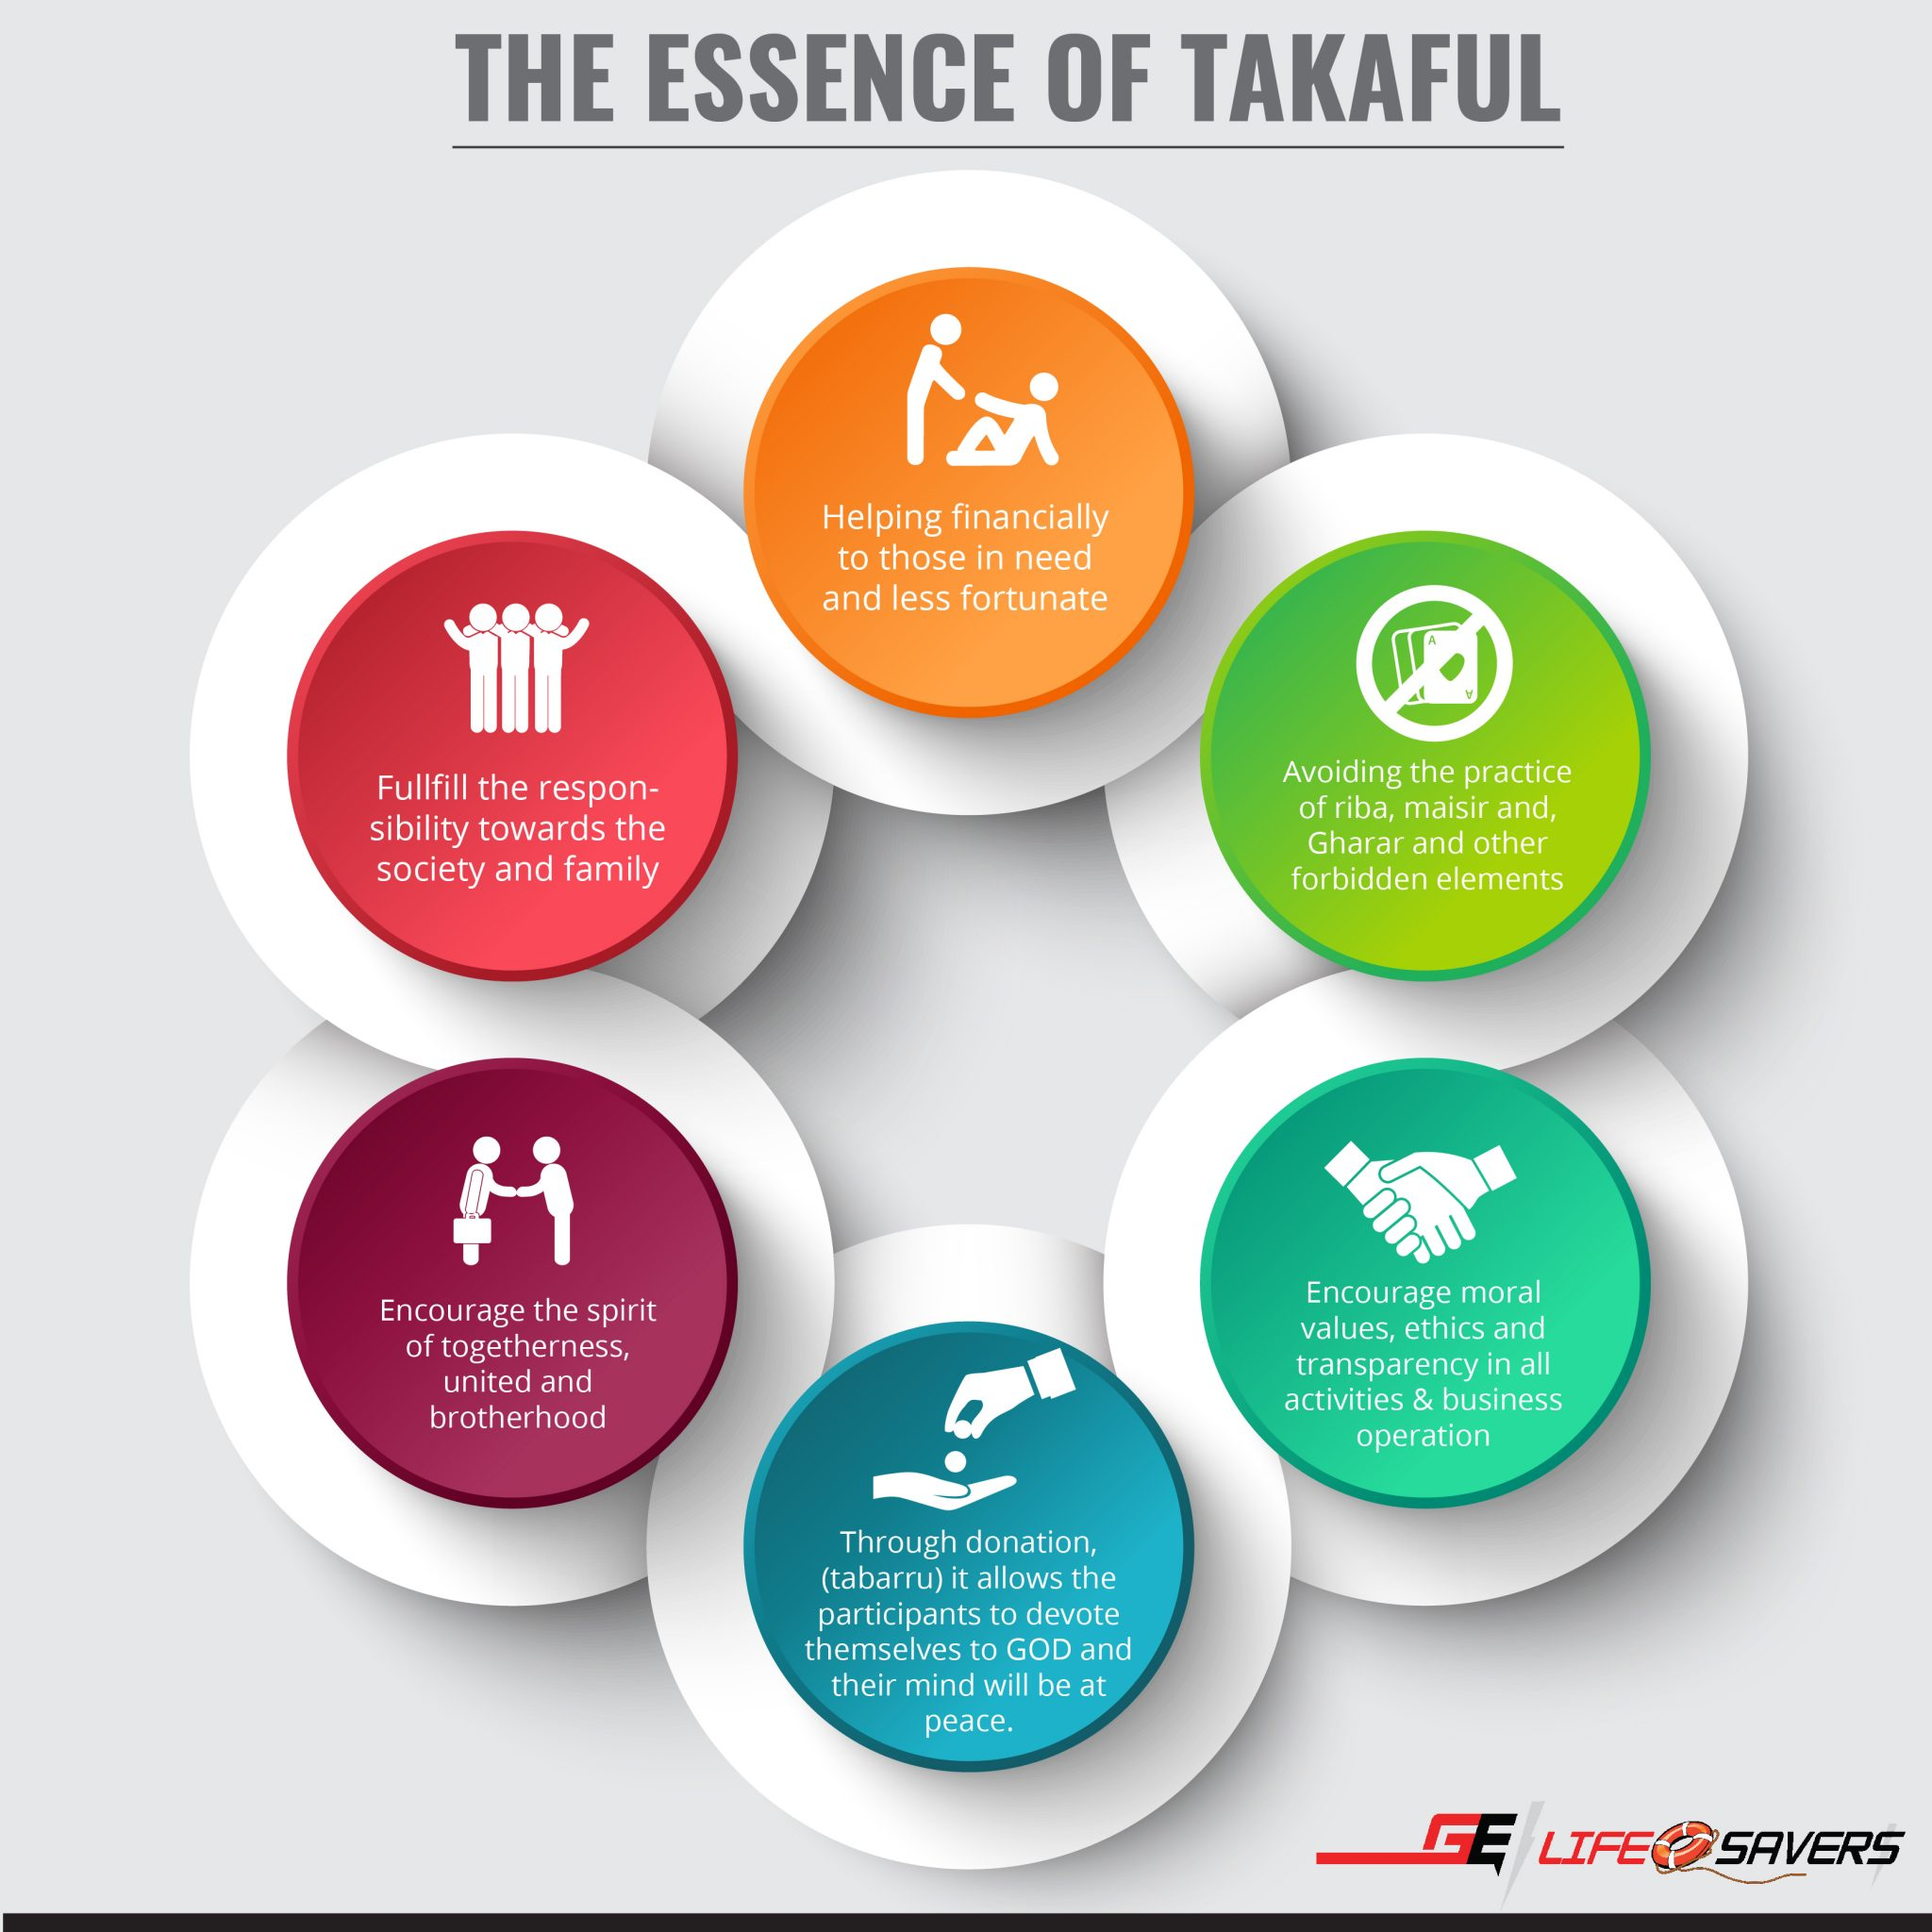 The essence of Takaful